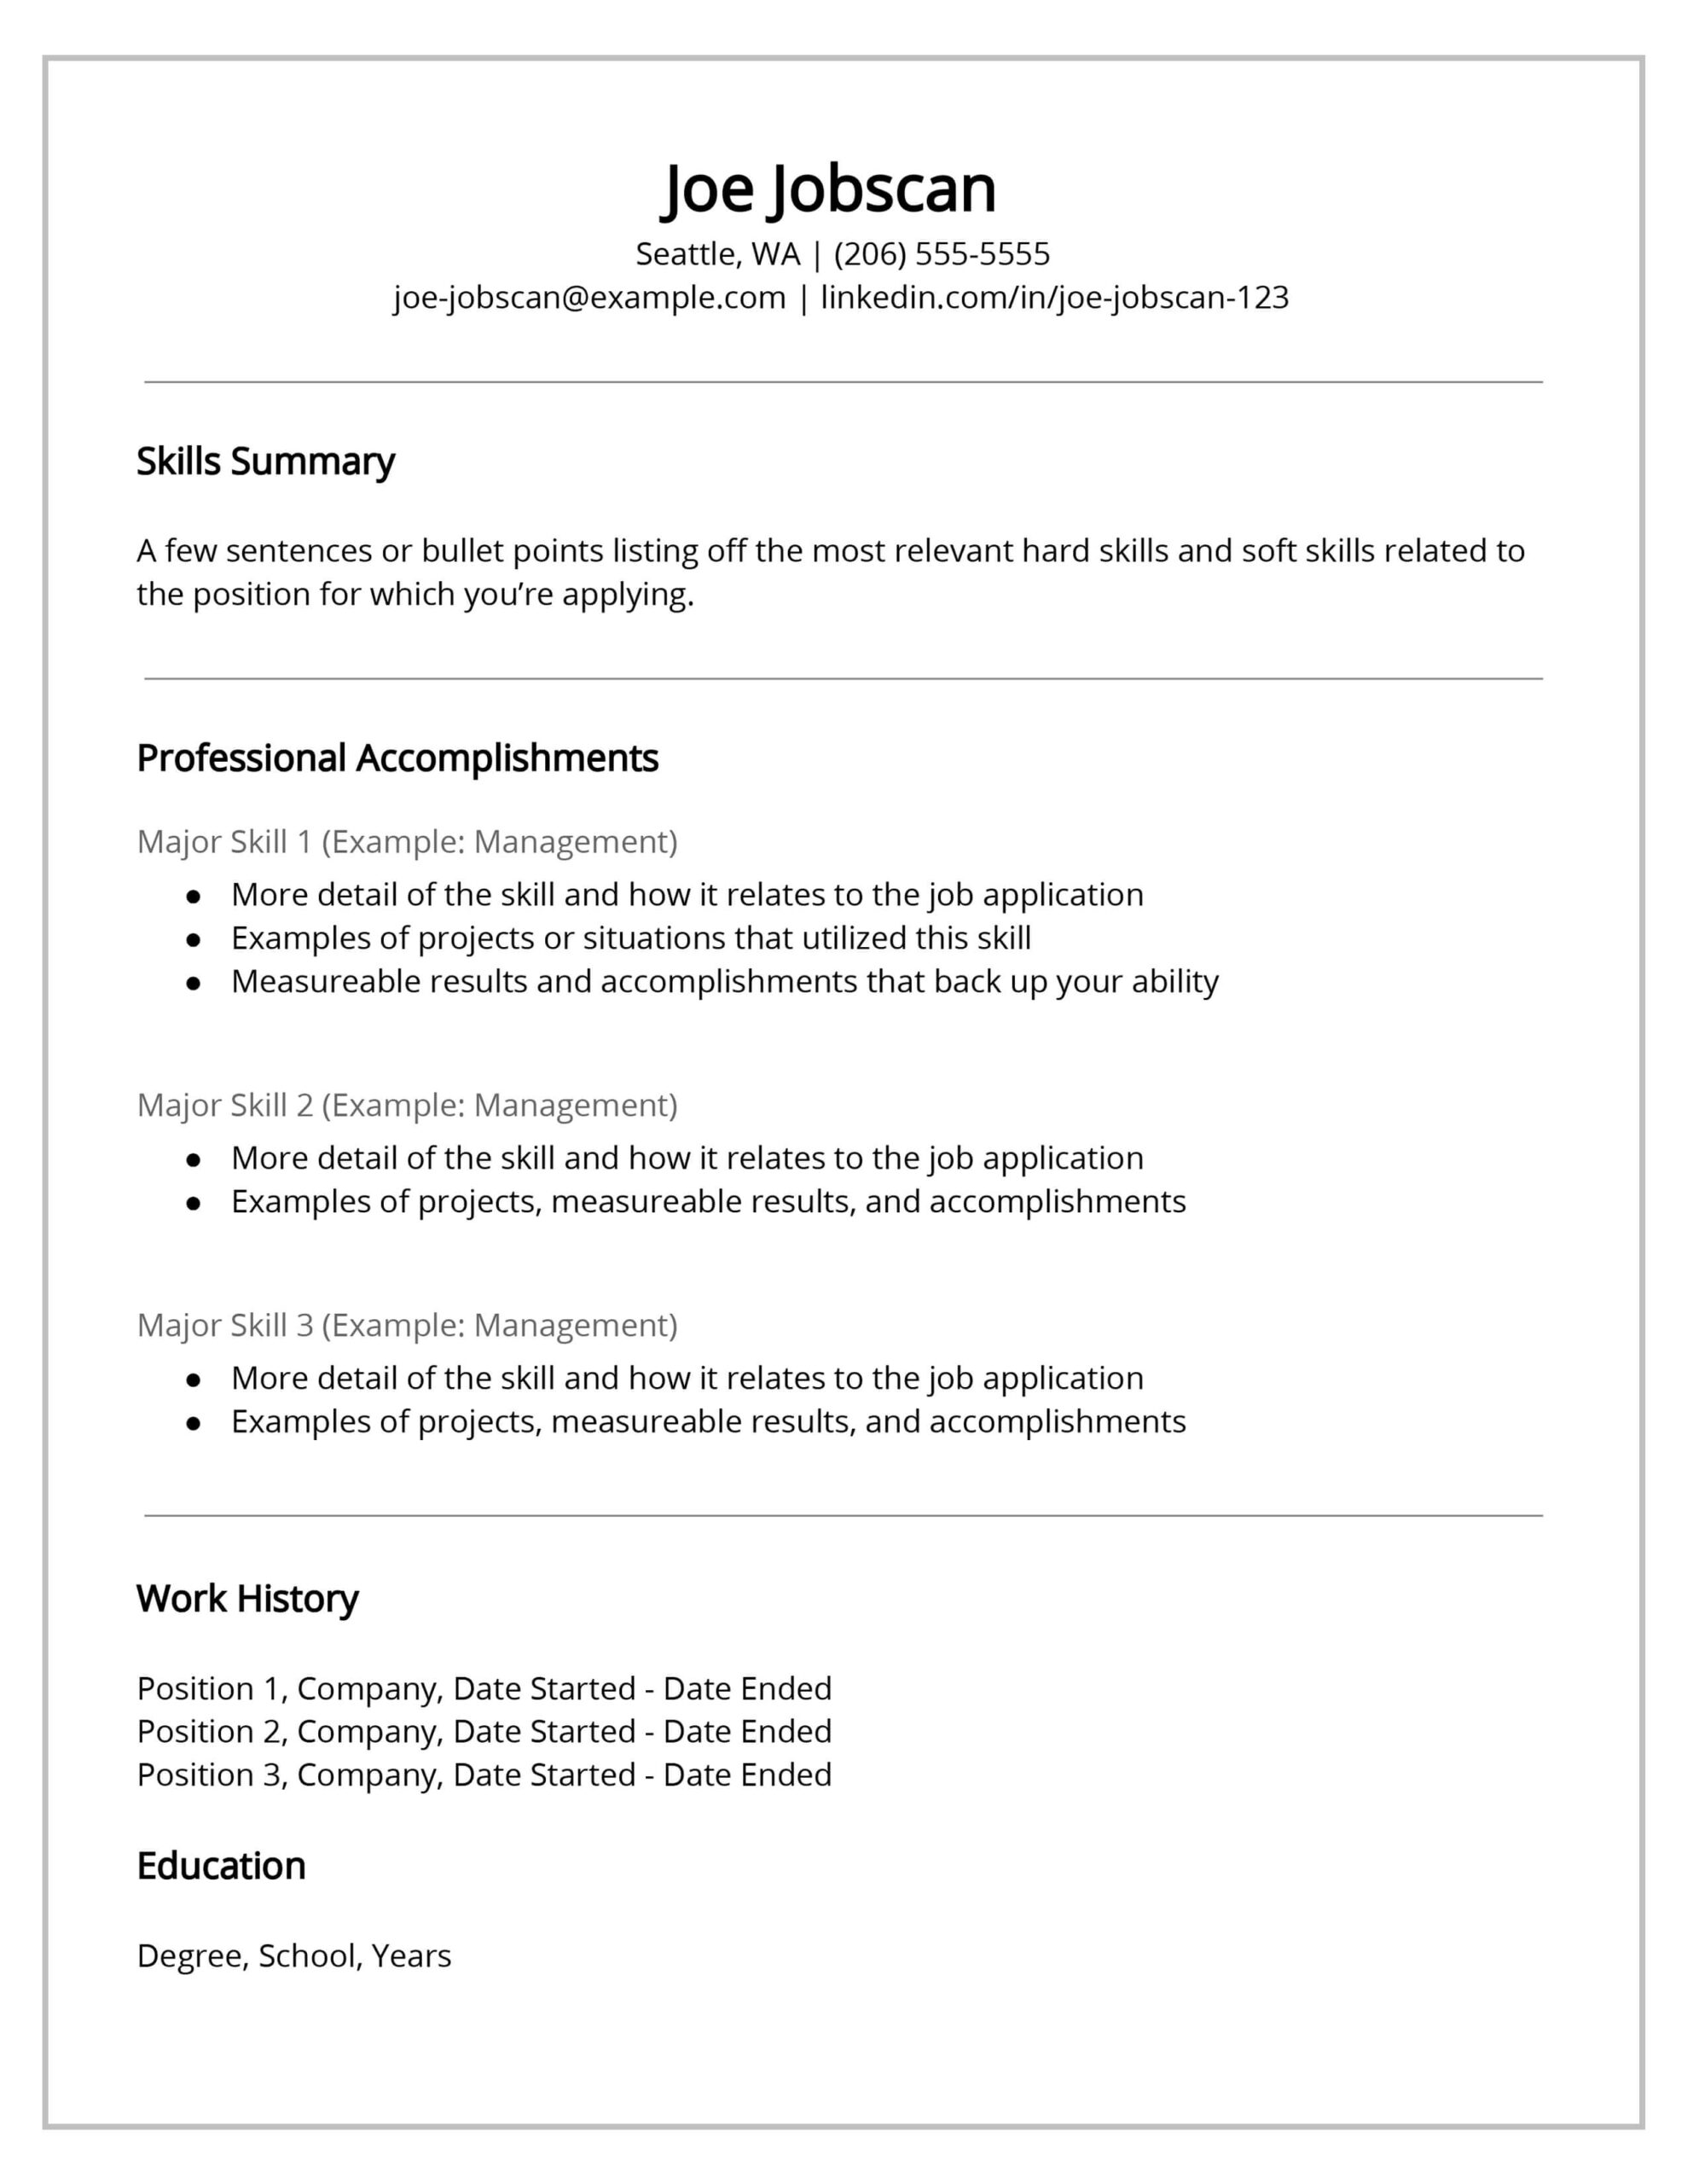 recruiters hate the functional resume format here skill set template cashier experience Resume Skill Set Resume Format